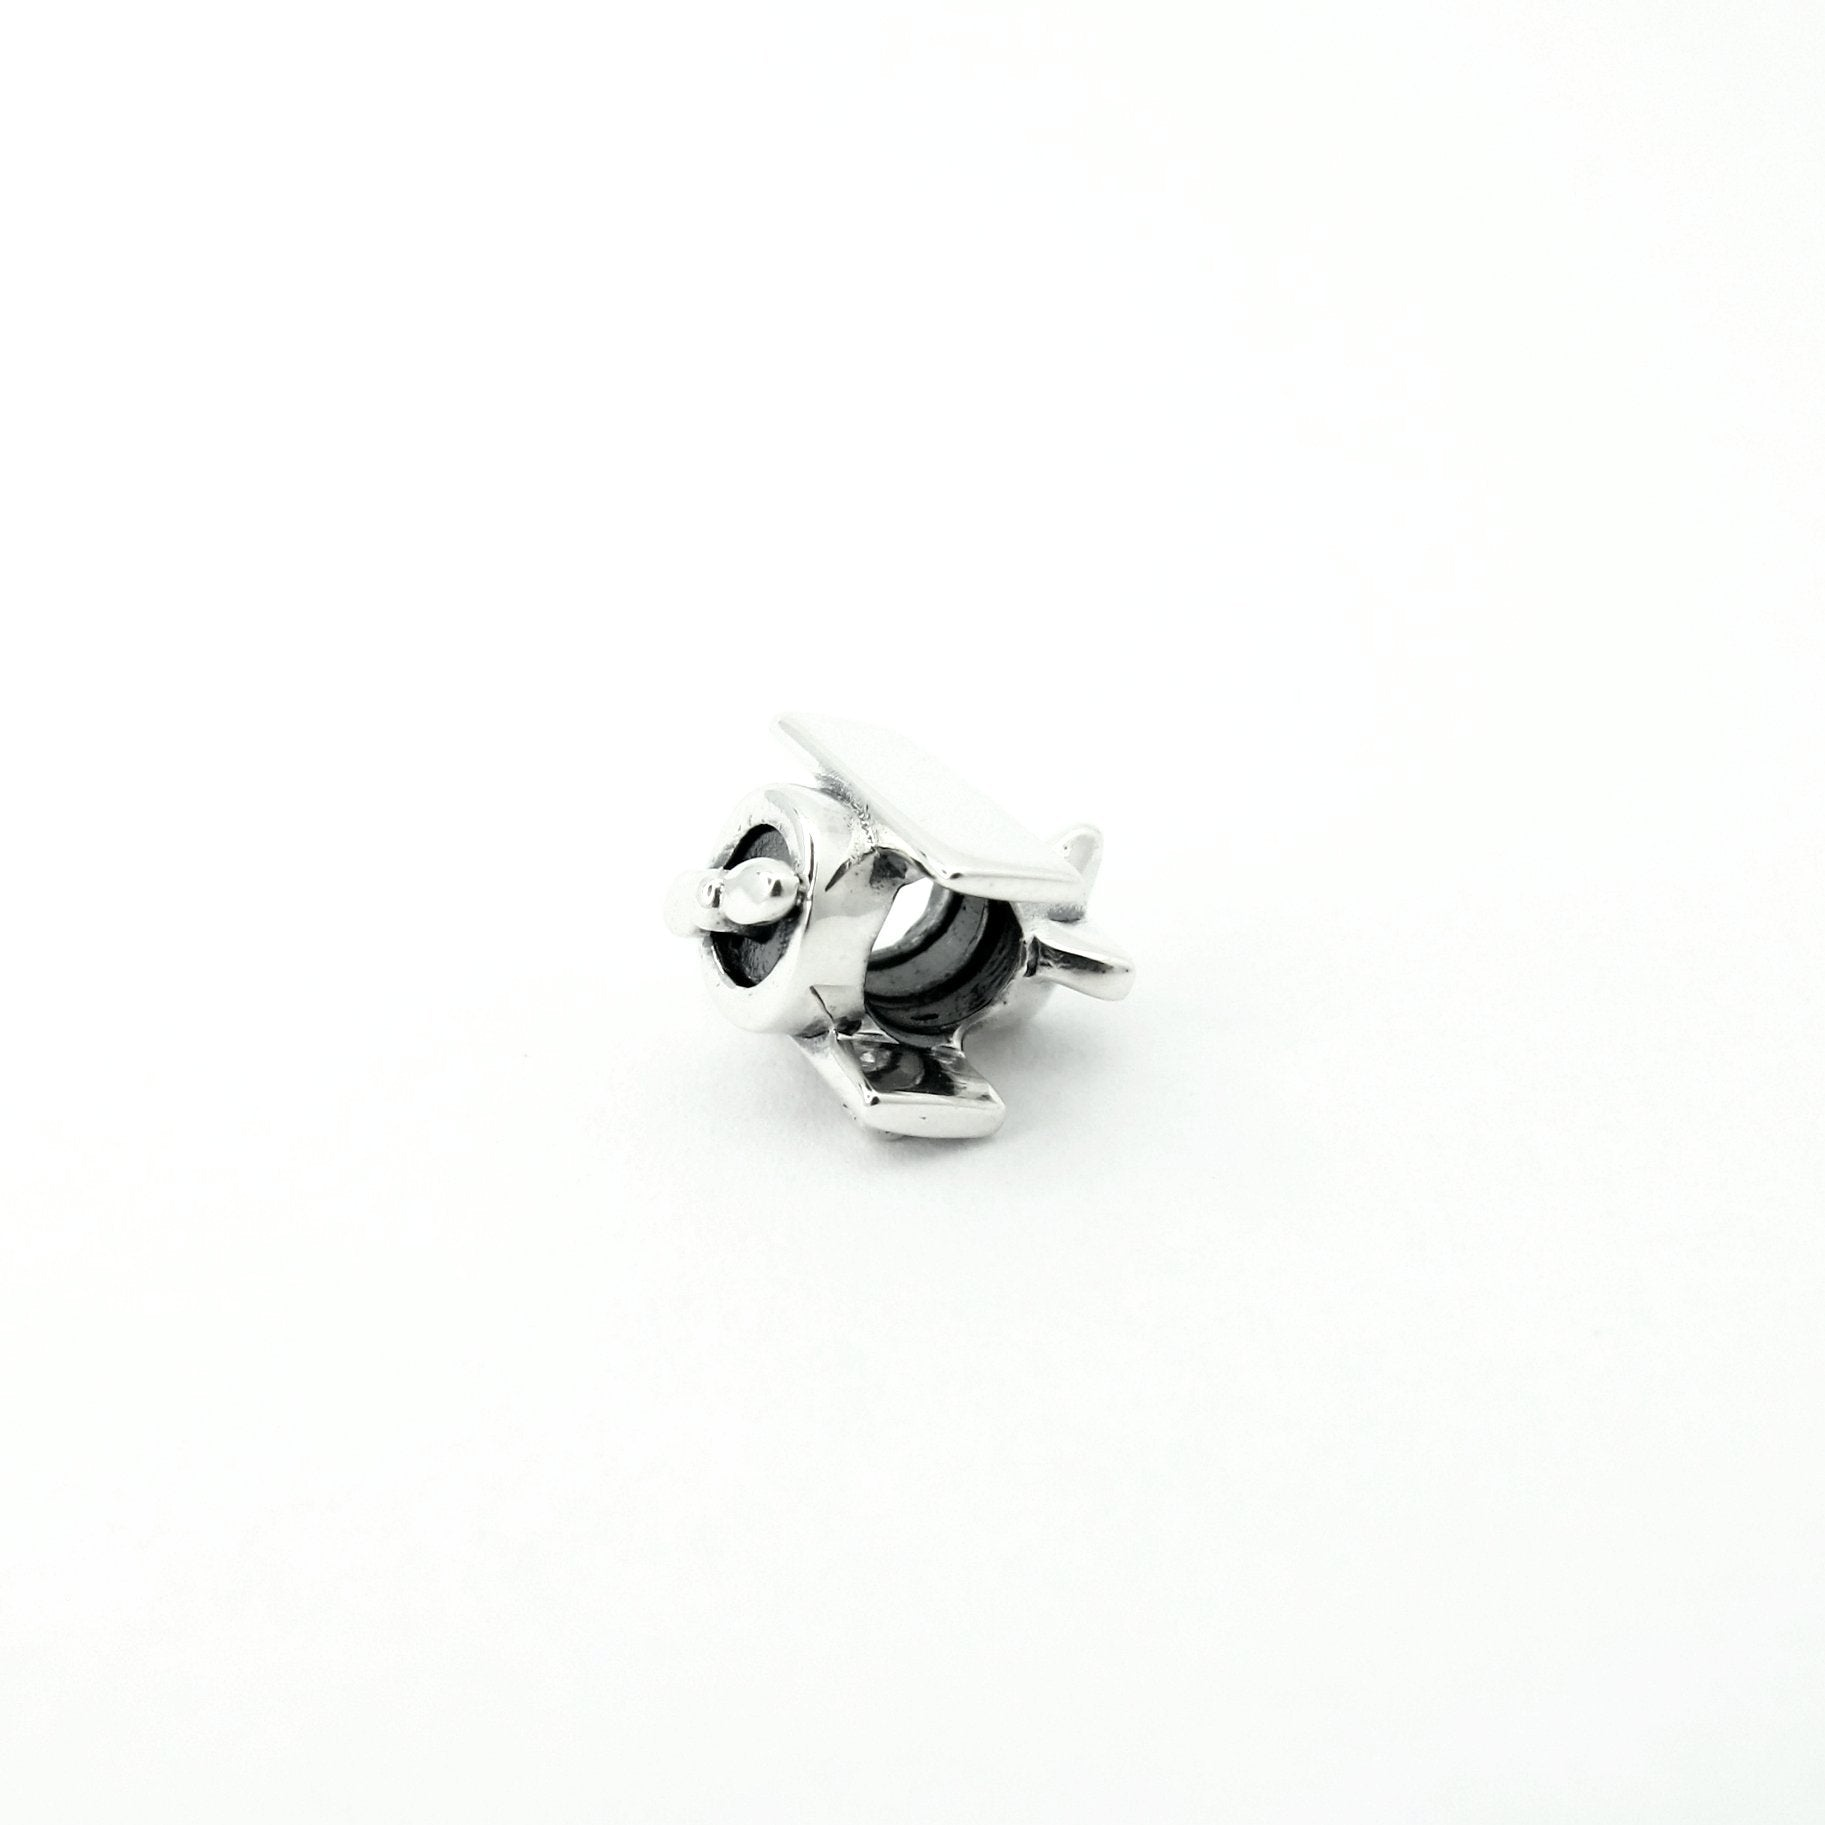 Take To The Sky Biplane Couture Charm